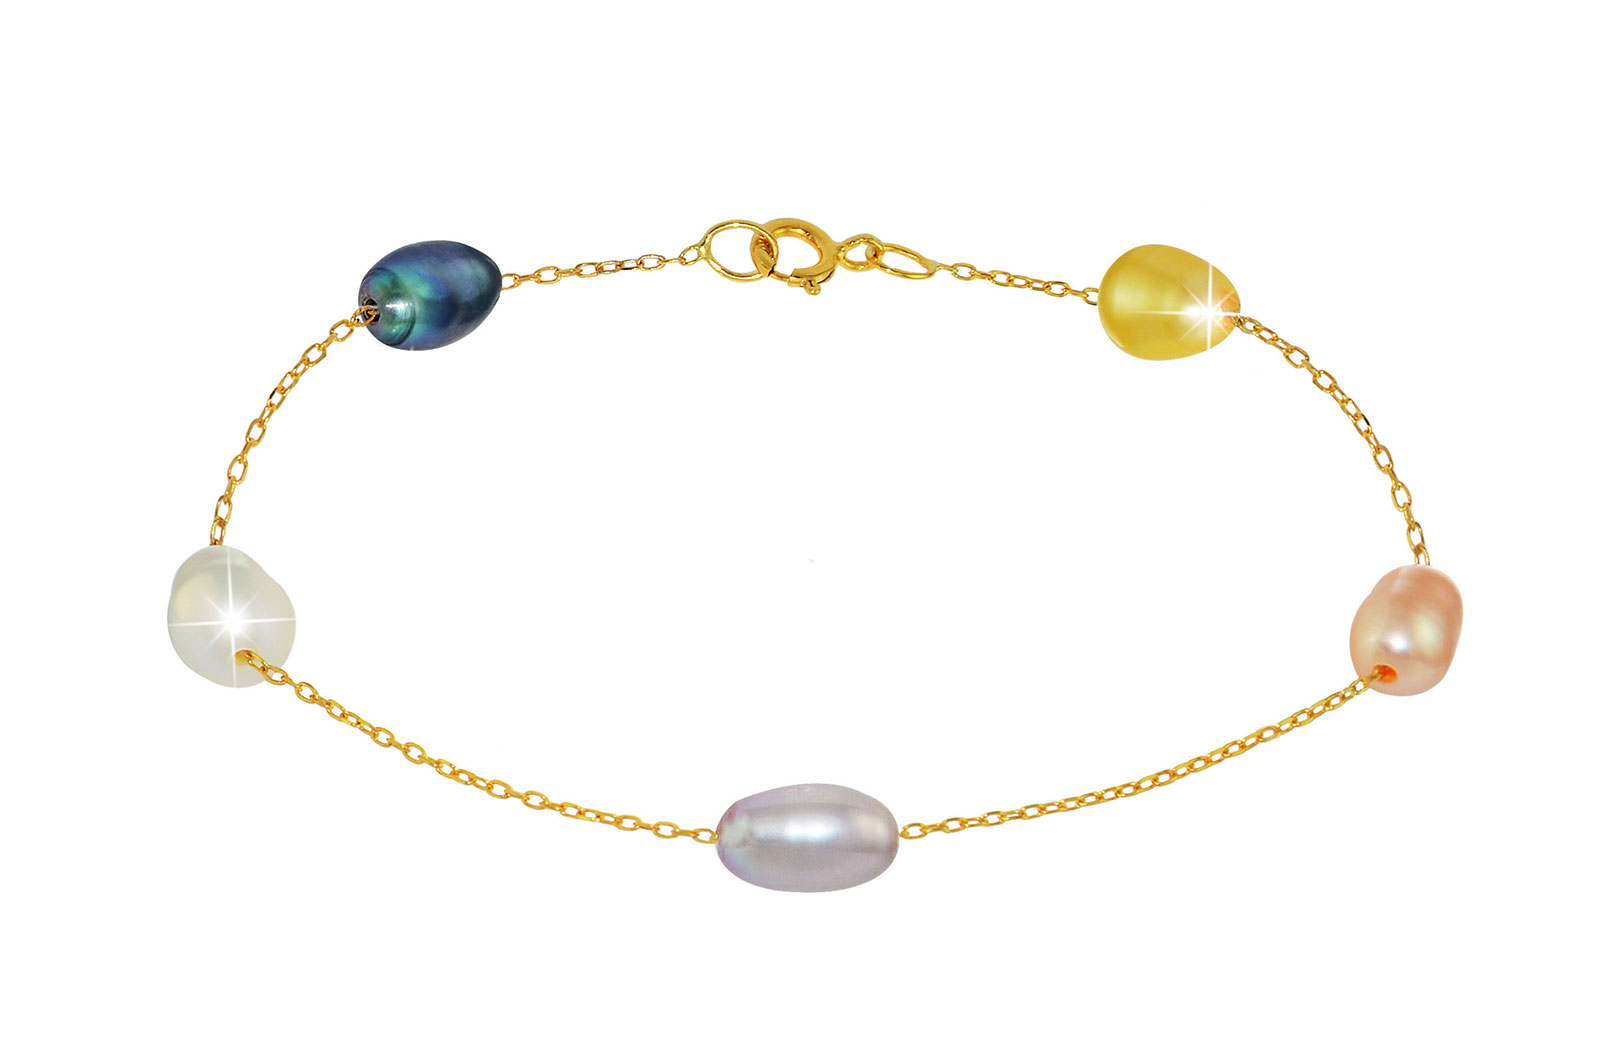 Vera Perla 10K Gold Multicolored Pearls Bracelet